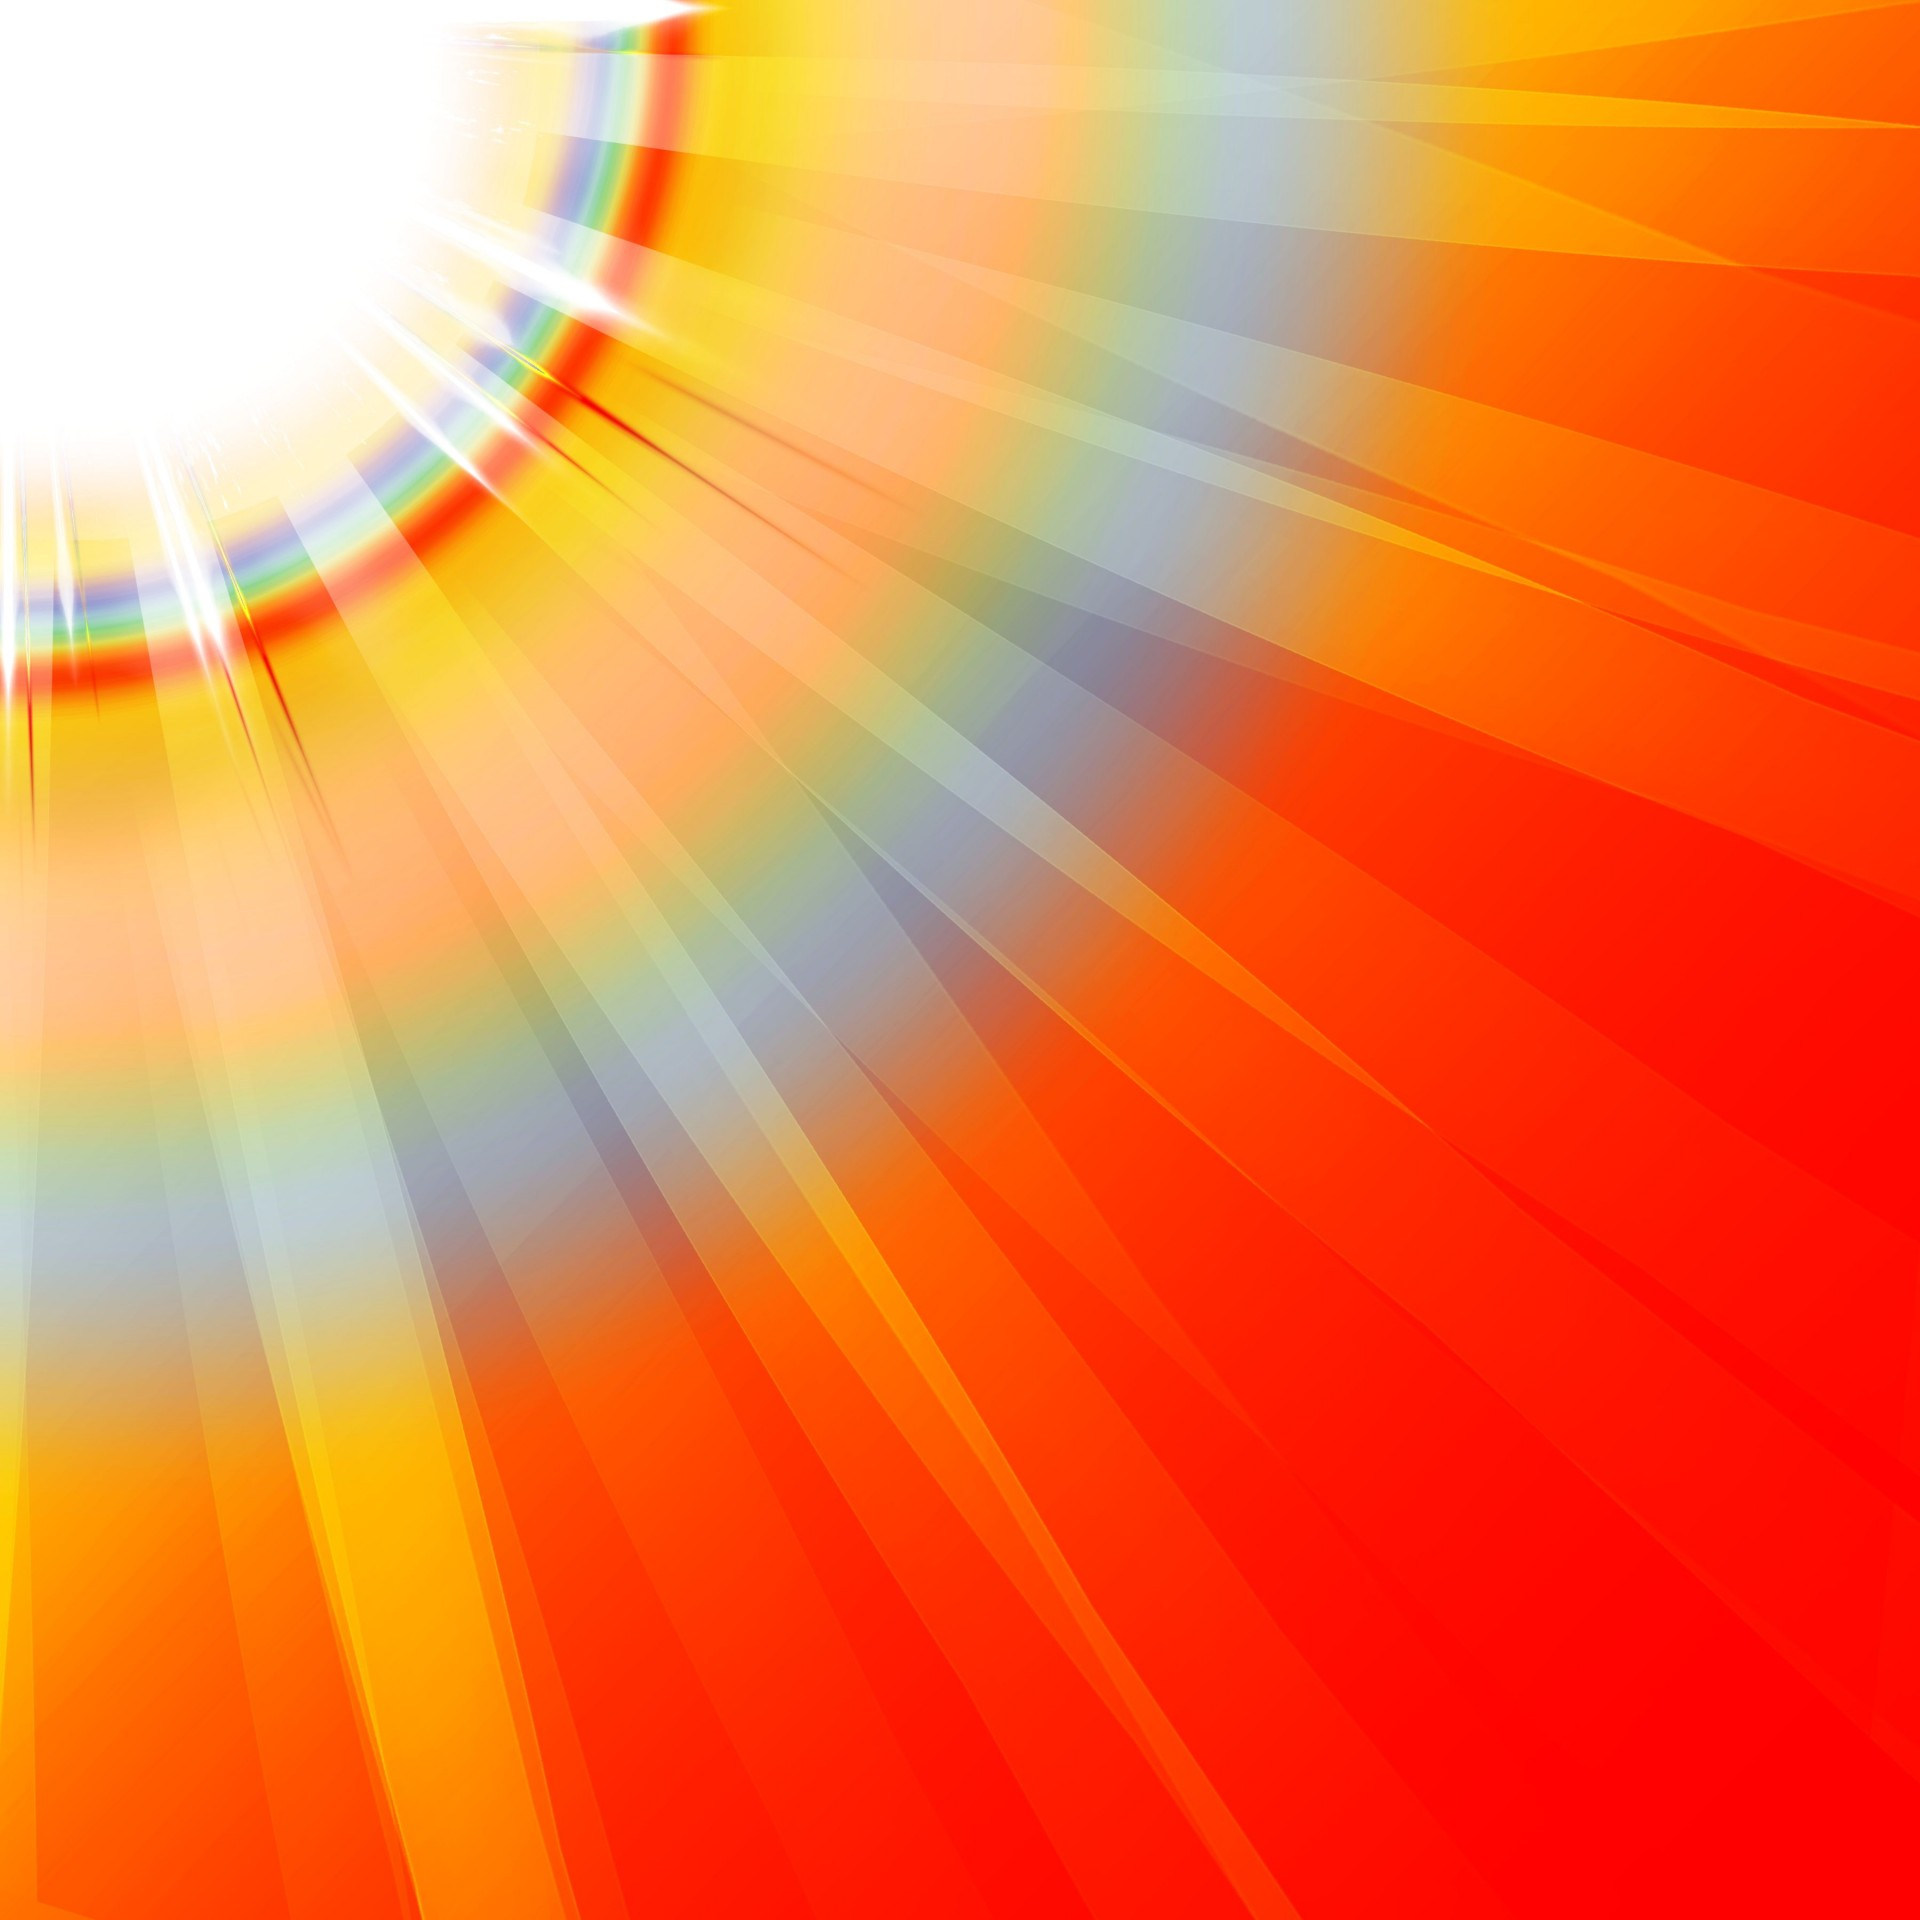 PNG File Sun Rays image #36913